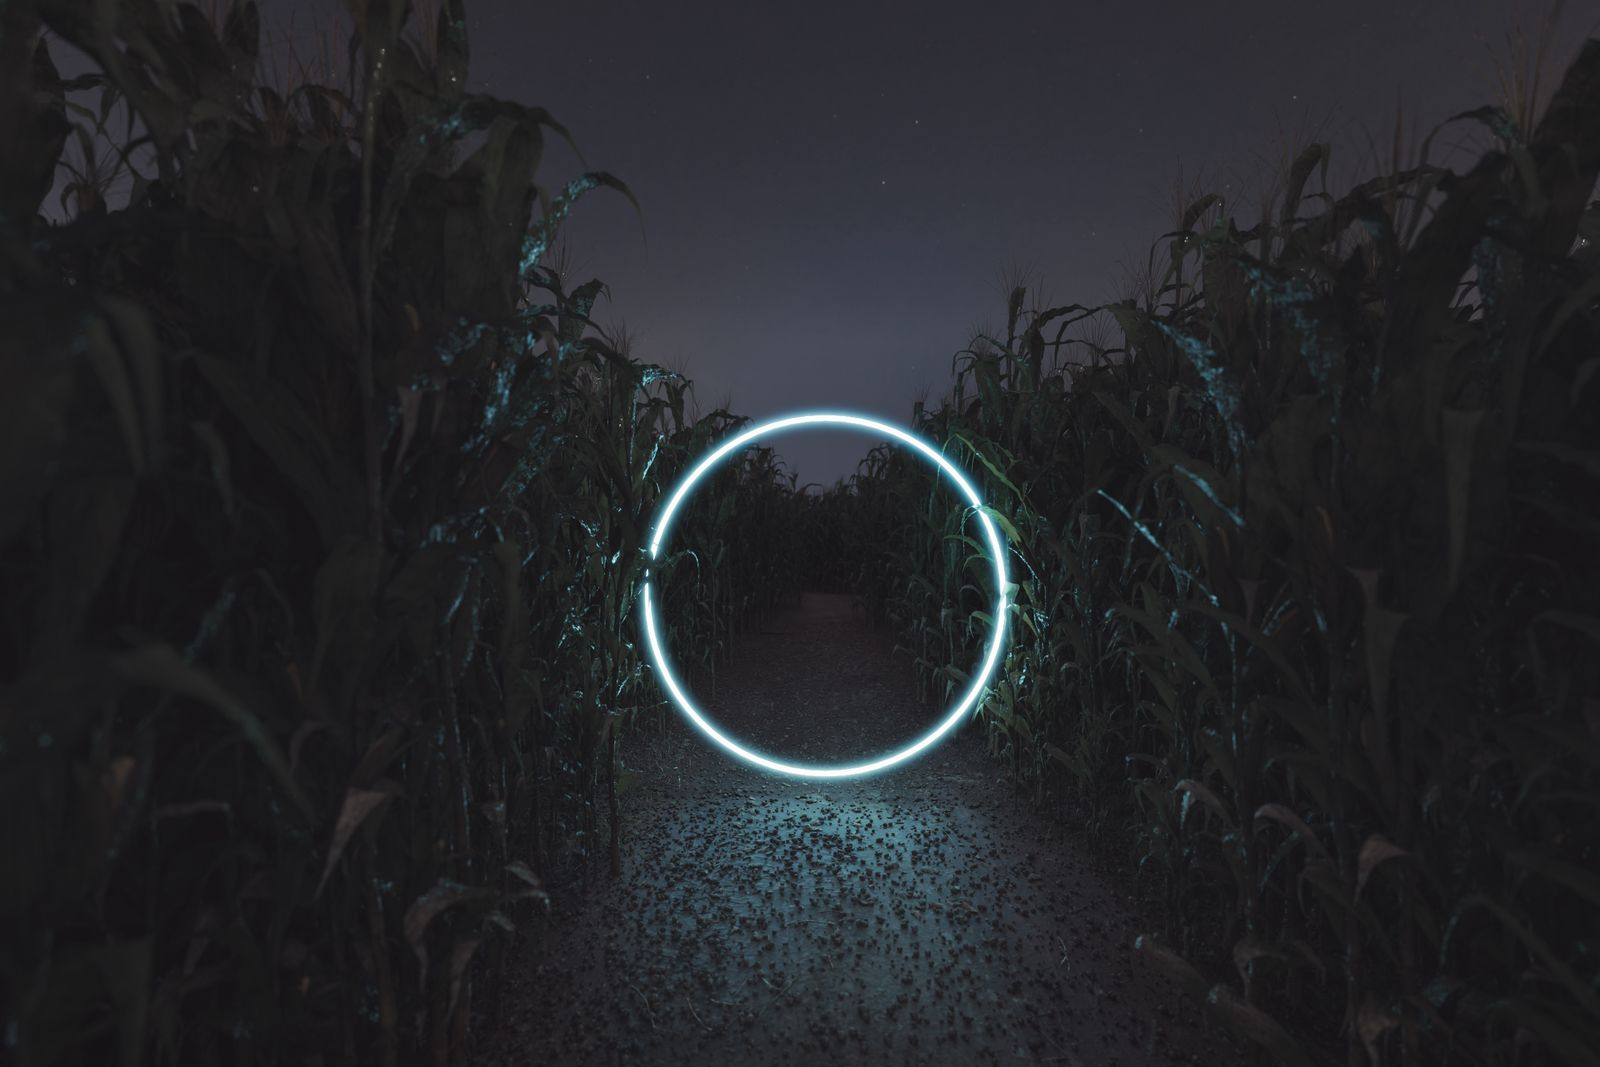 3d rendering of lighten circle portal in the middle of cornfield at night